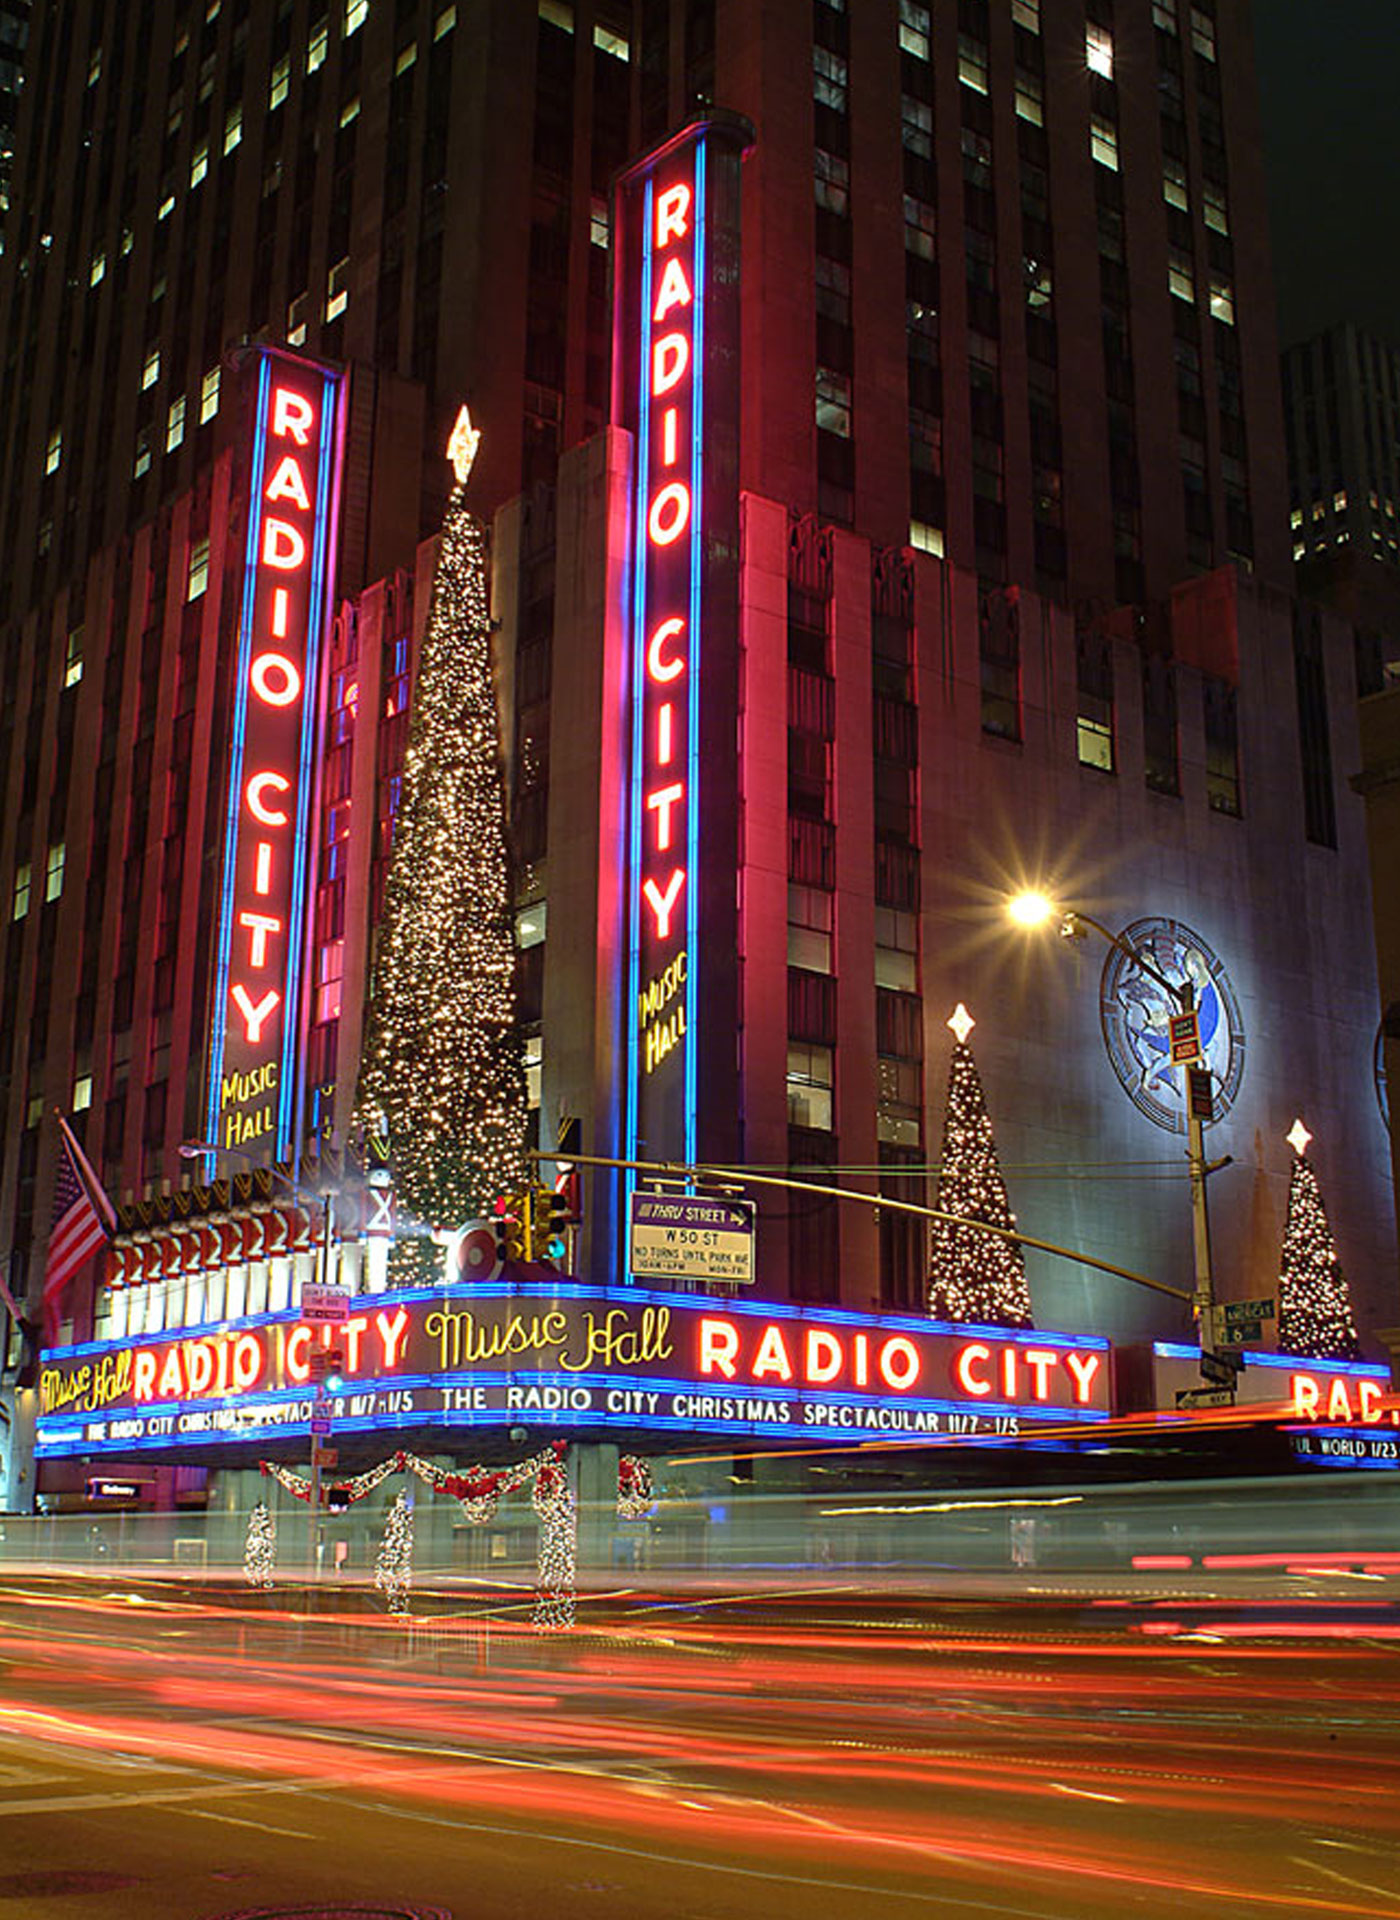 Christmas Decoration, Holiday Lighting, Radio Music Hall | American Christmas by MK Illumination